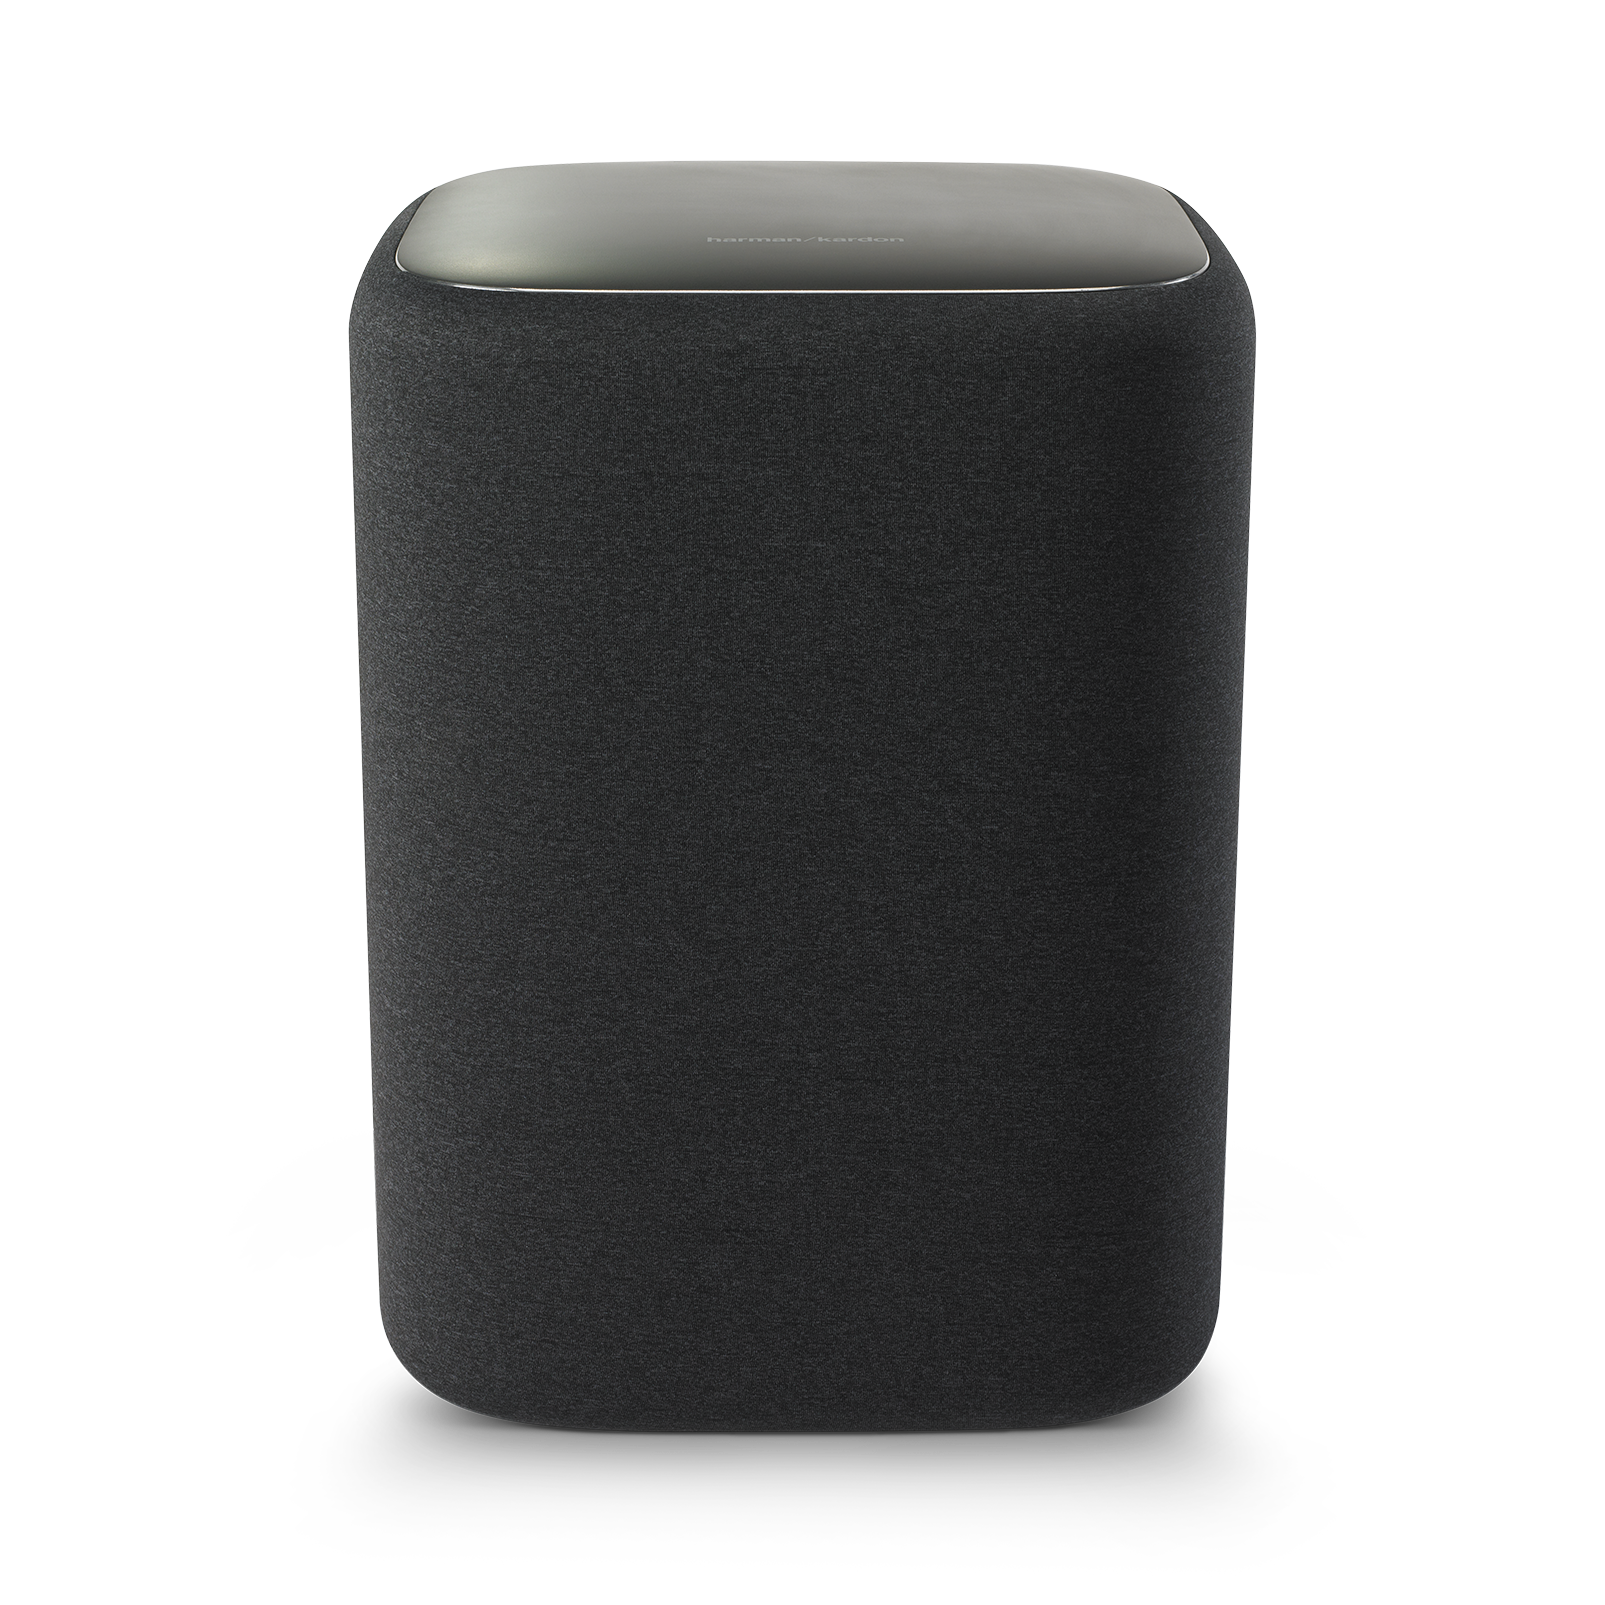 "Enchant Subwoofer - Graphite - 10"" Wireless Subwoofer - Detailshot 2"